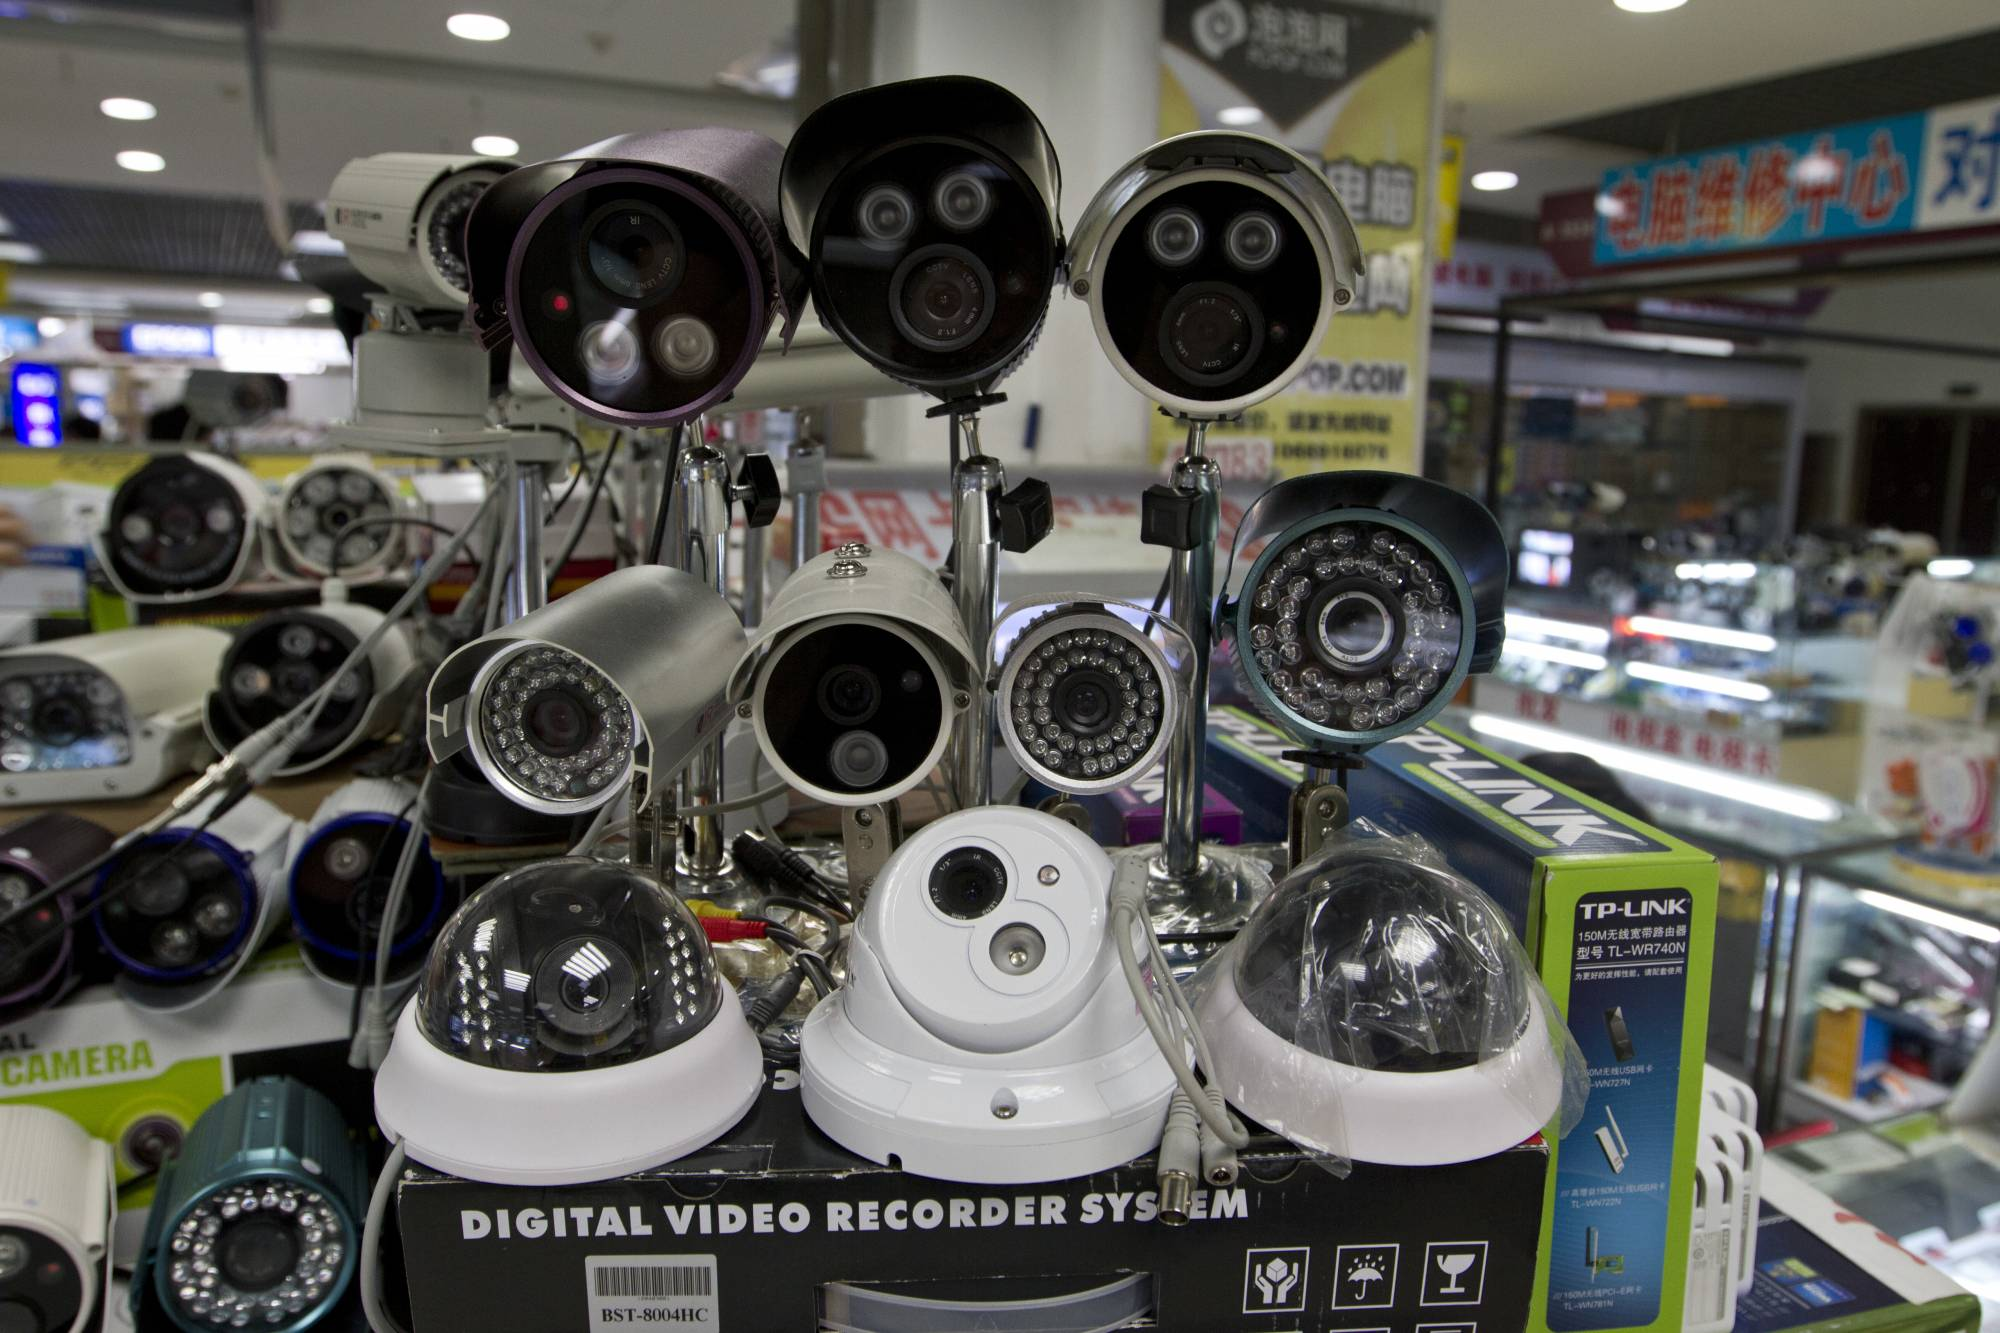 surveillance cameras in china